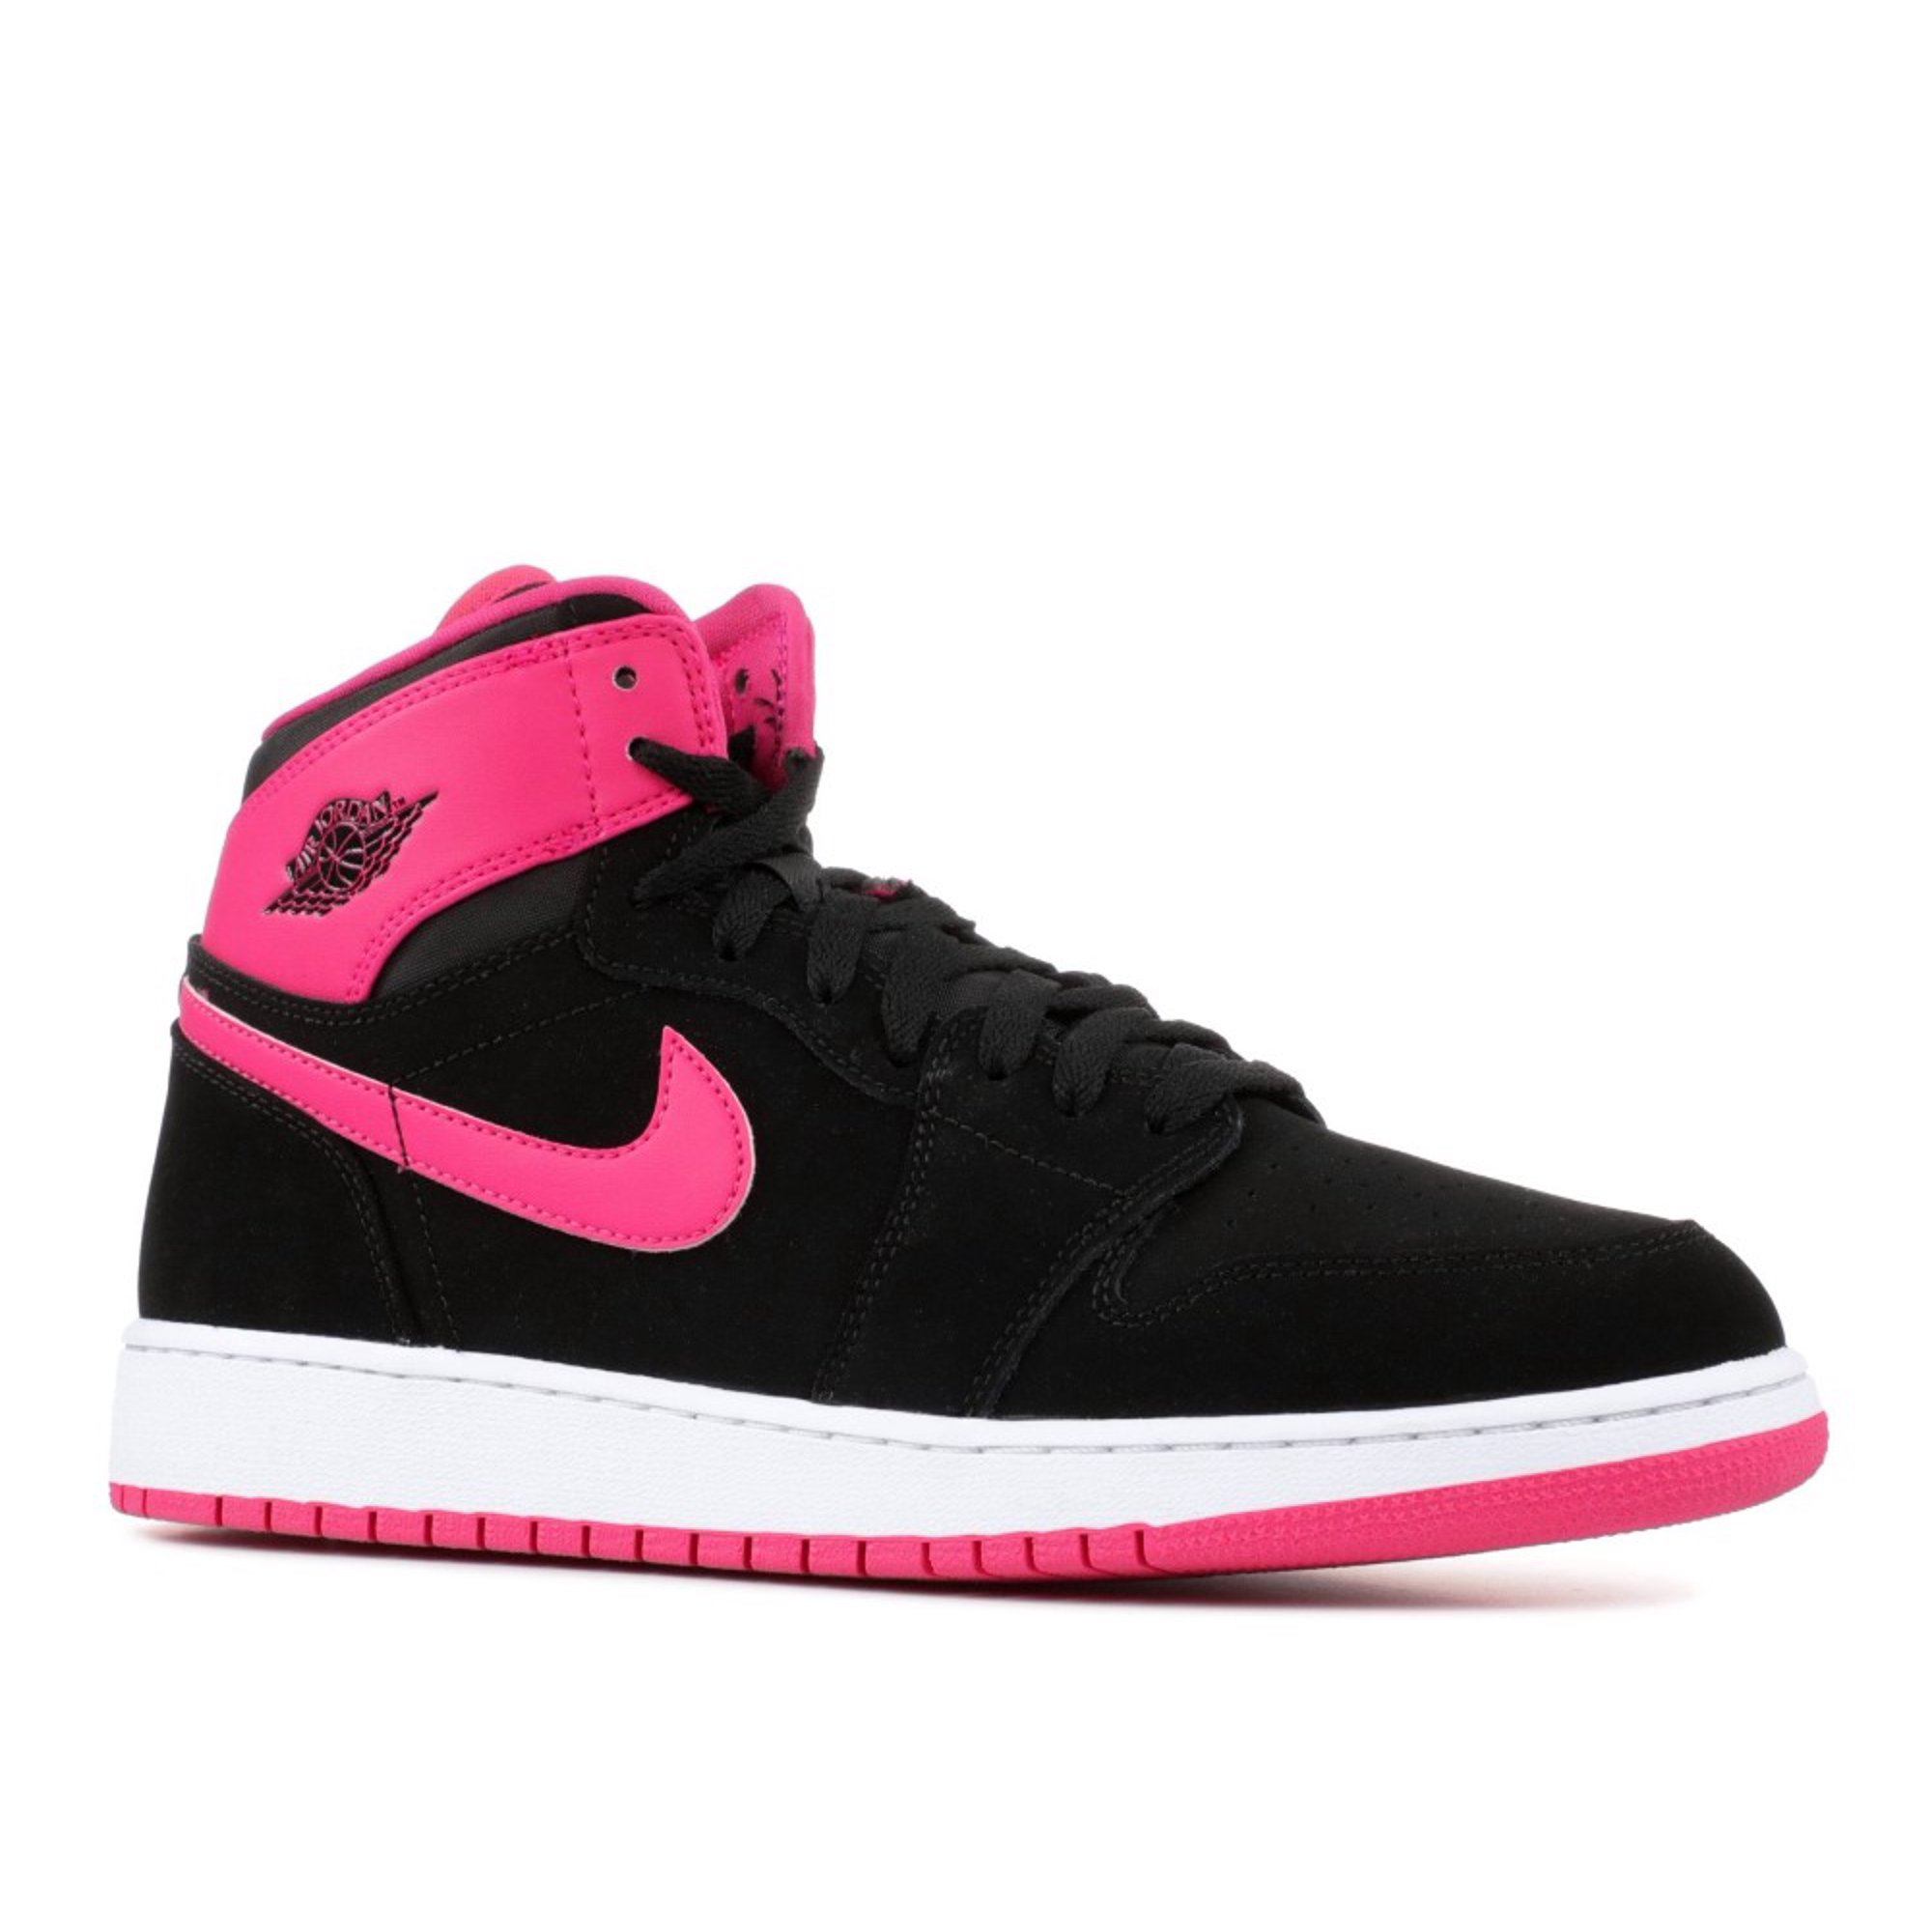 purchase cheap e68a2 523f2 Air Jordan - Unisex - Air Jordan 1 Retro High (Gg) - 332148 ...